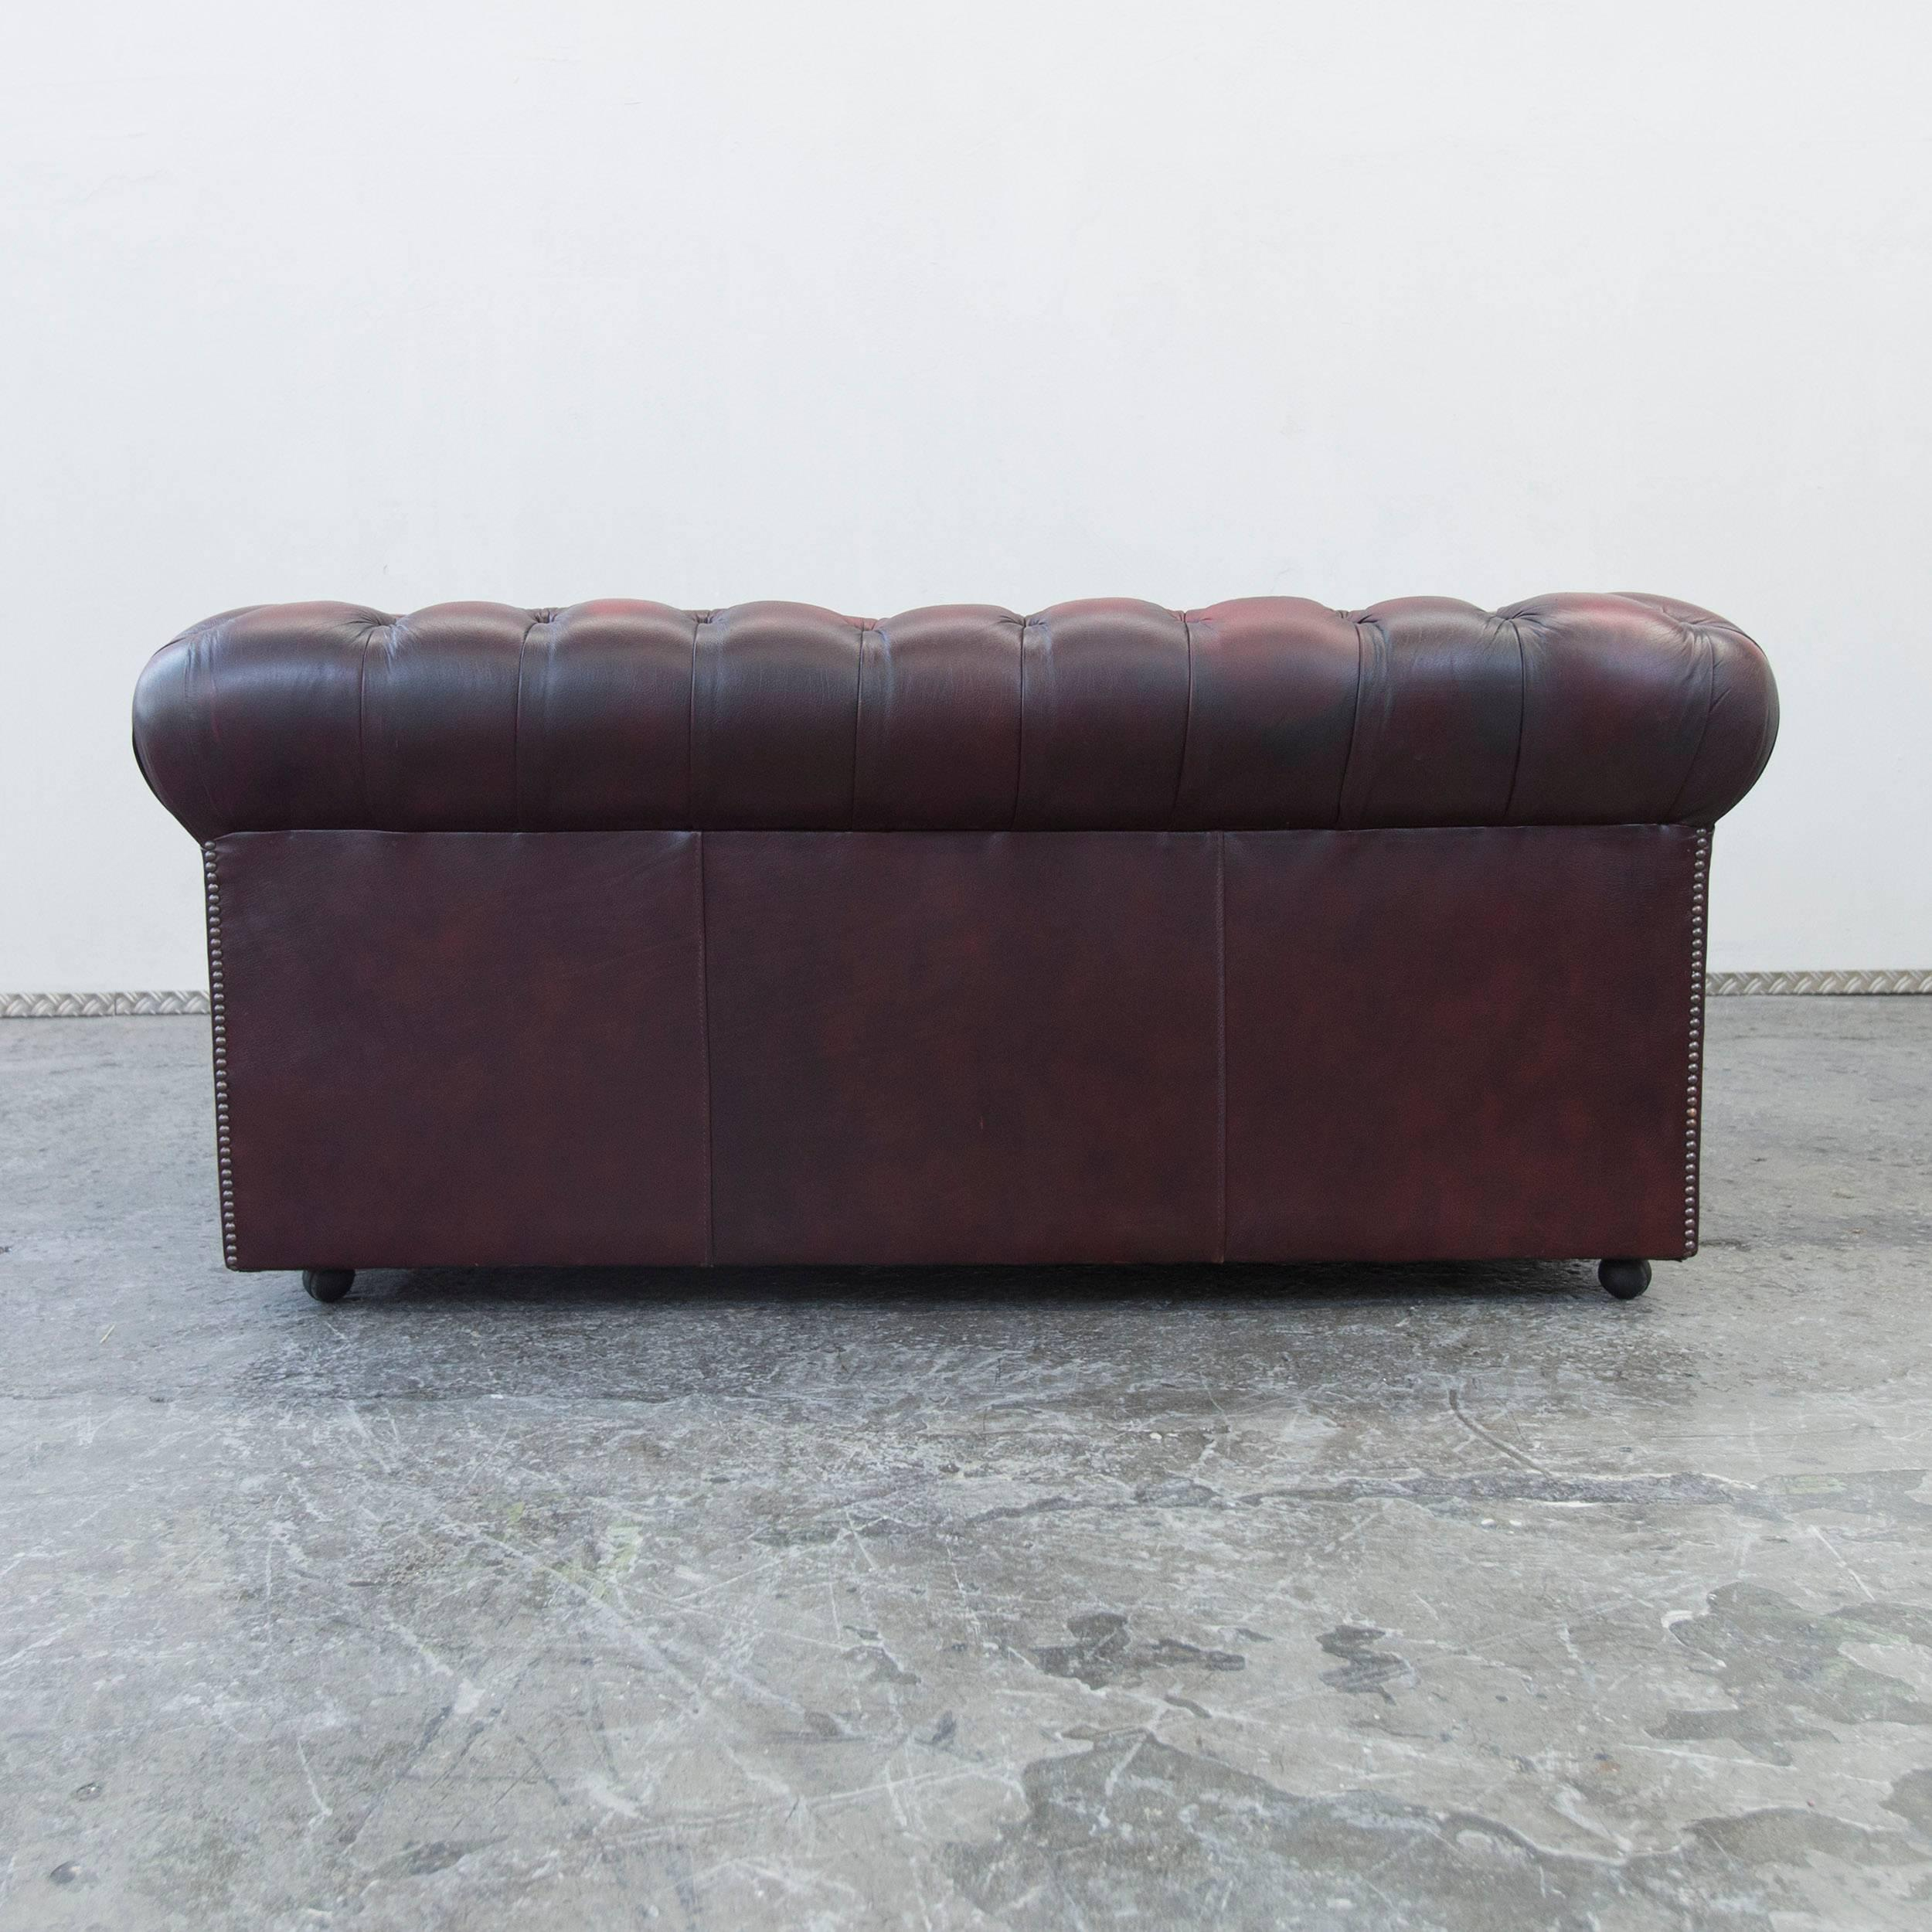 Chesterfield Oxblood Sofa #10 - Chesterfield Leather Sofa Oxblood Red Two-Seat Couch Vintage Retro For Sale  2